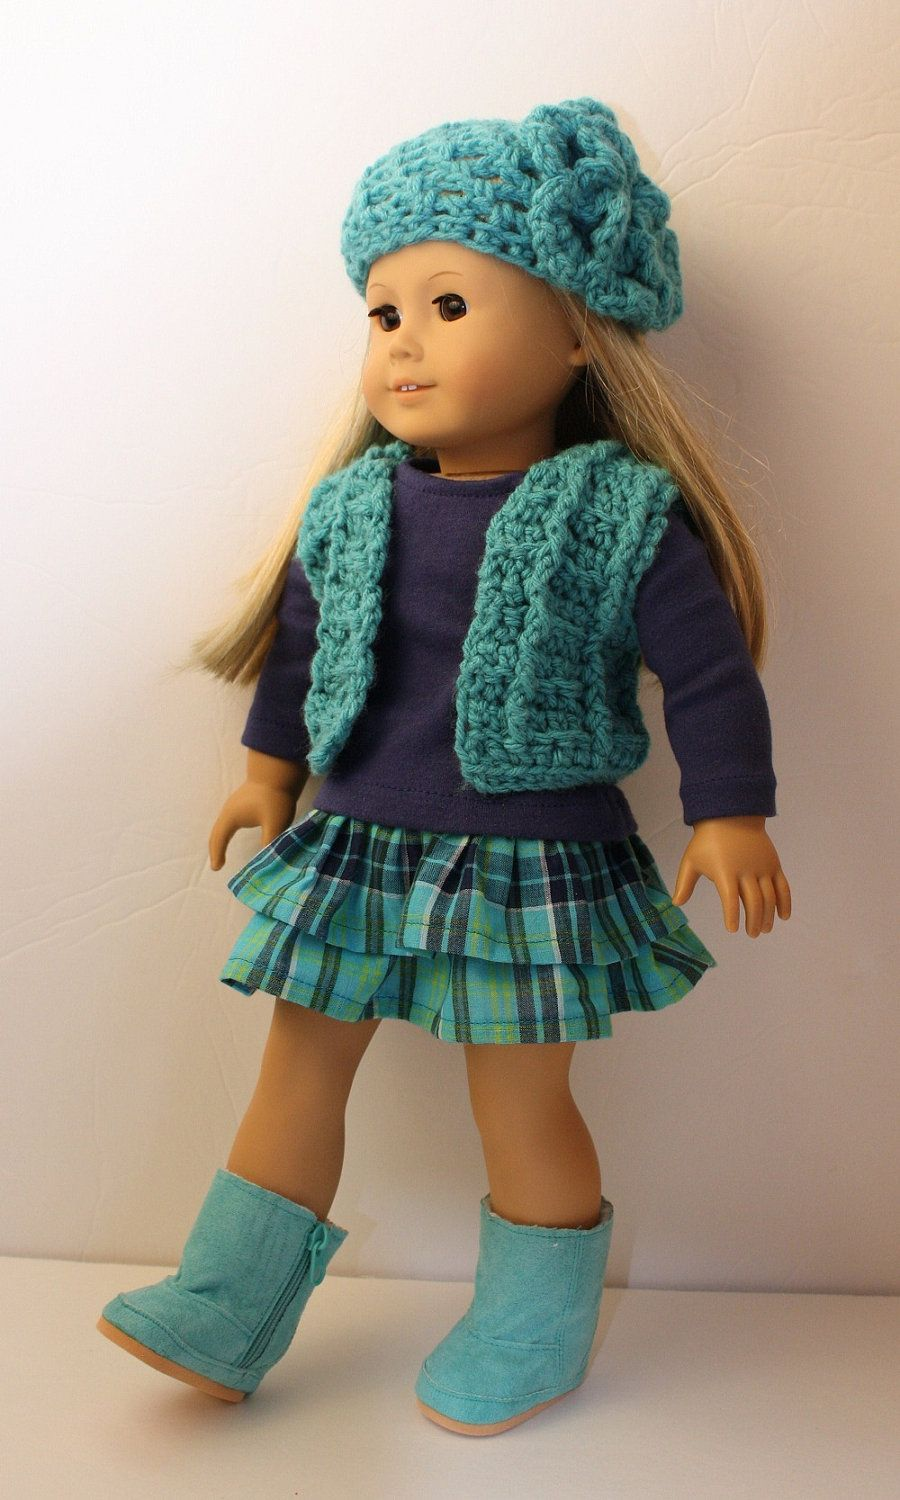 Pin On 18 Inch Doll Clothes Crocheted